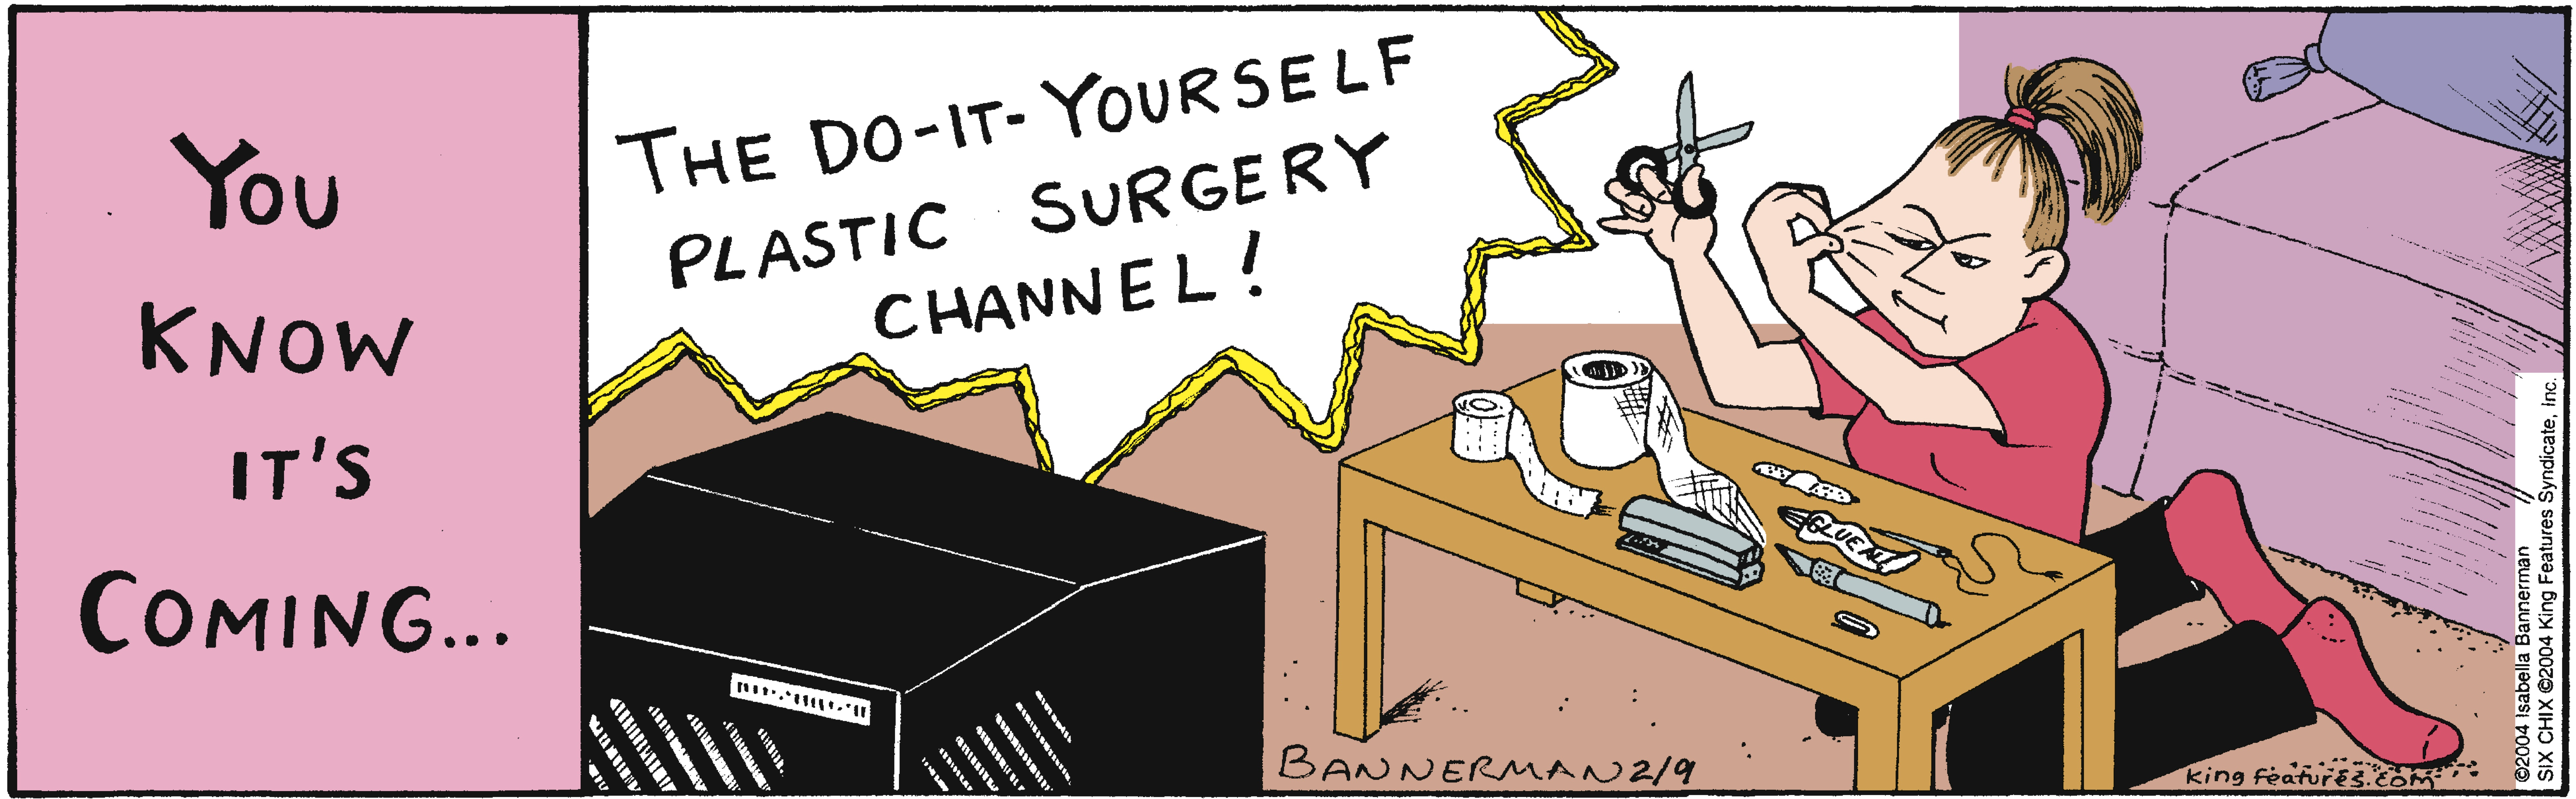 Surgical cartoons surgical cartoon funny surgical picture surgical - Plastic Surgery Cartoon By Isabella Bannerman